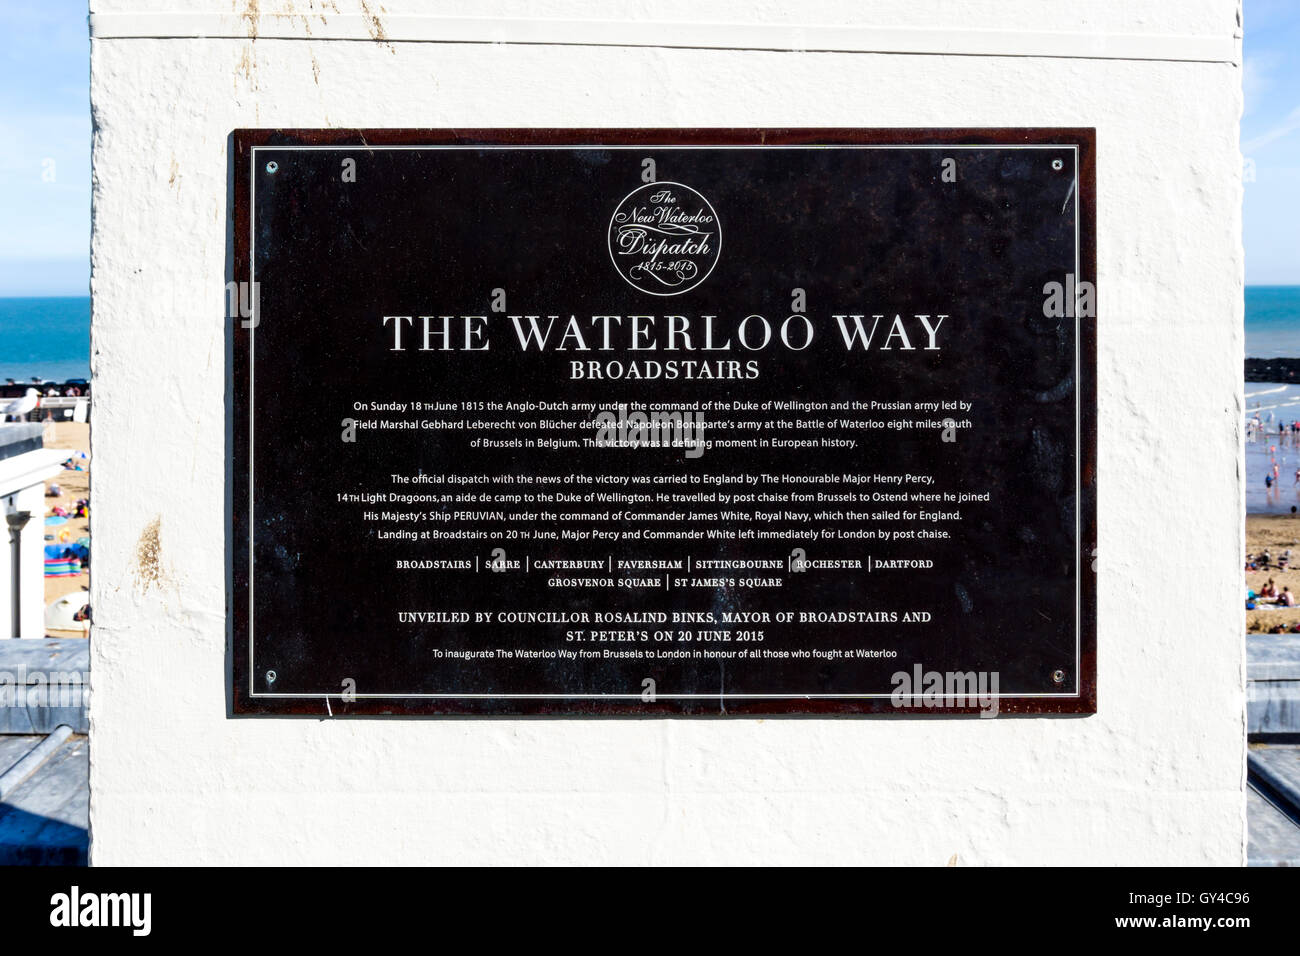 A plaque at Broadstairs commemorates the arrival of the first news of the Battle of Waterloo. - Stock Image